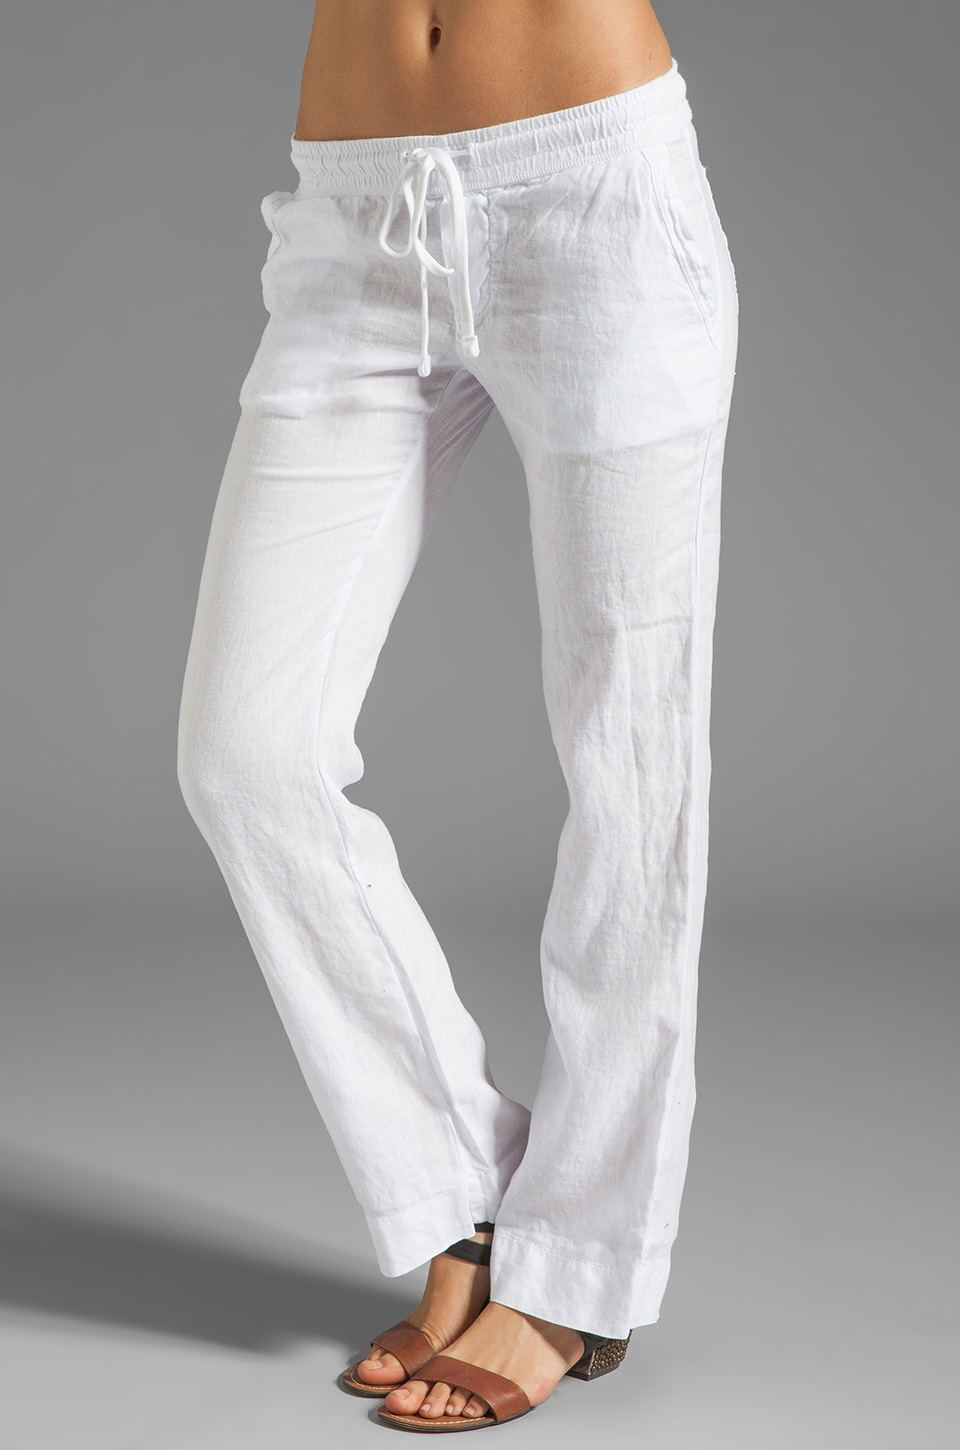 James Perse Tailored Linen Pant in White